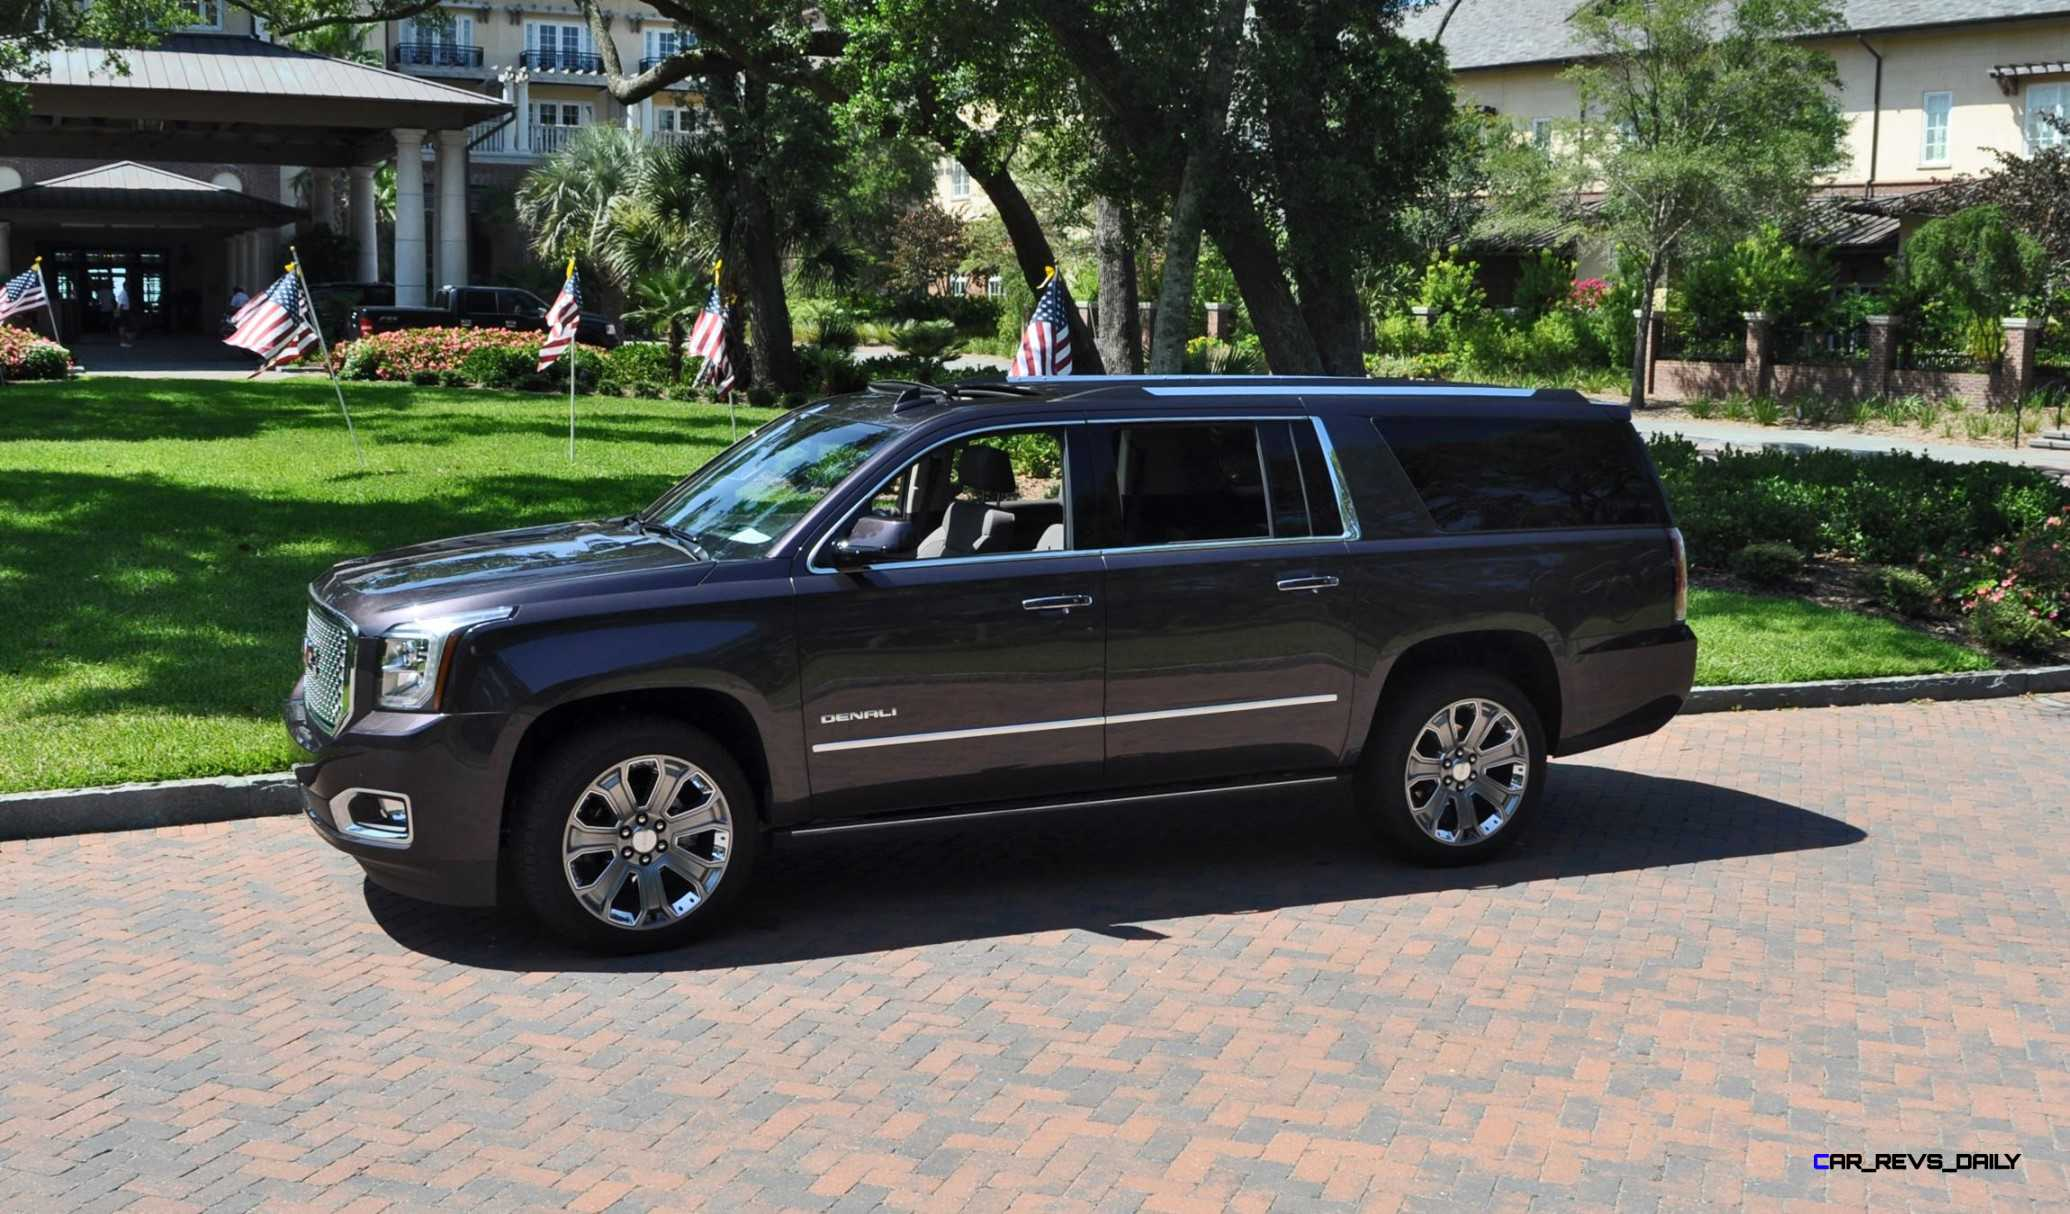 gmc xl and texas the vacation style family yukon denali reviewing txgarage annual